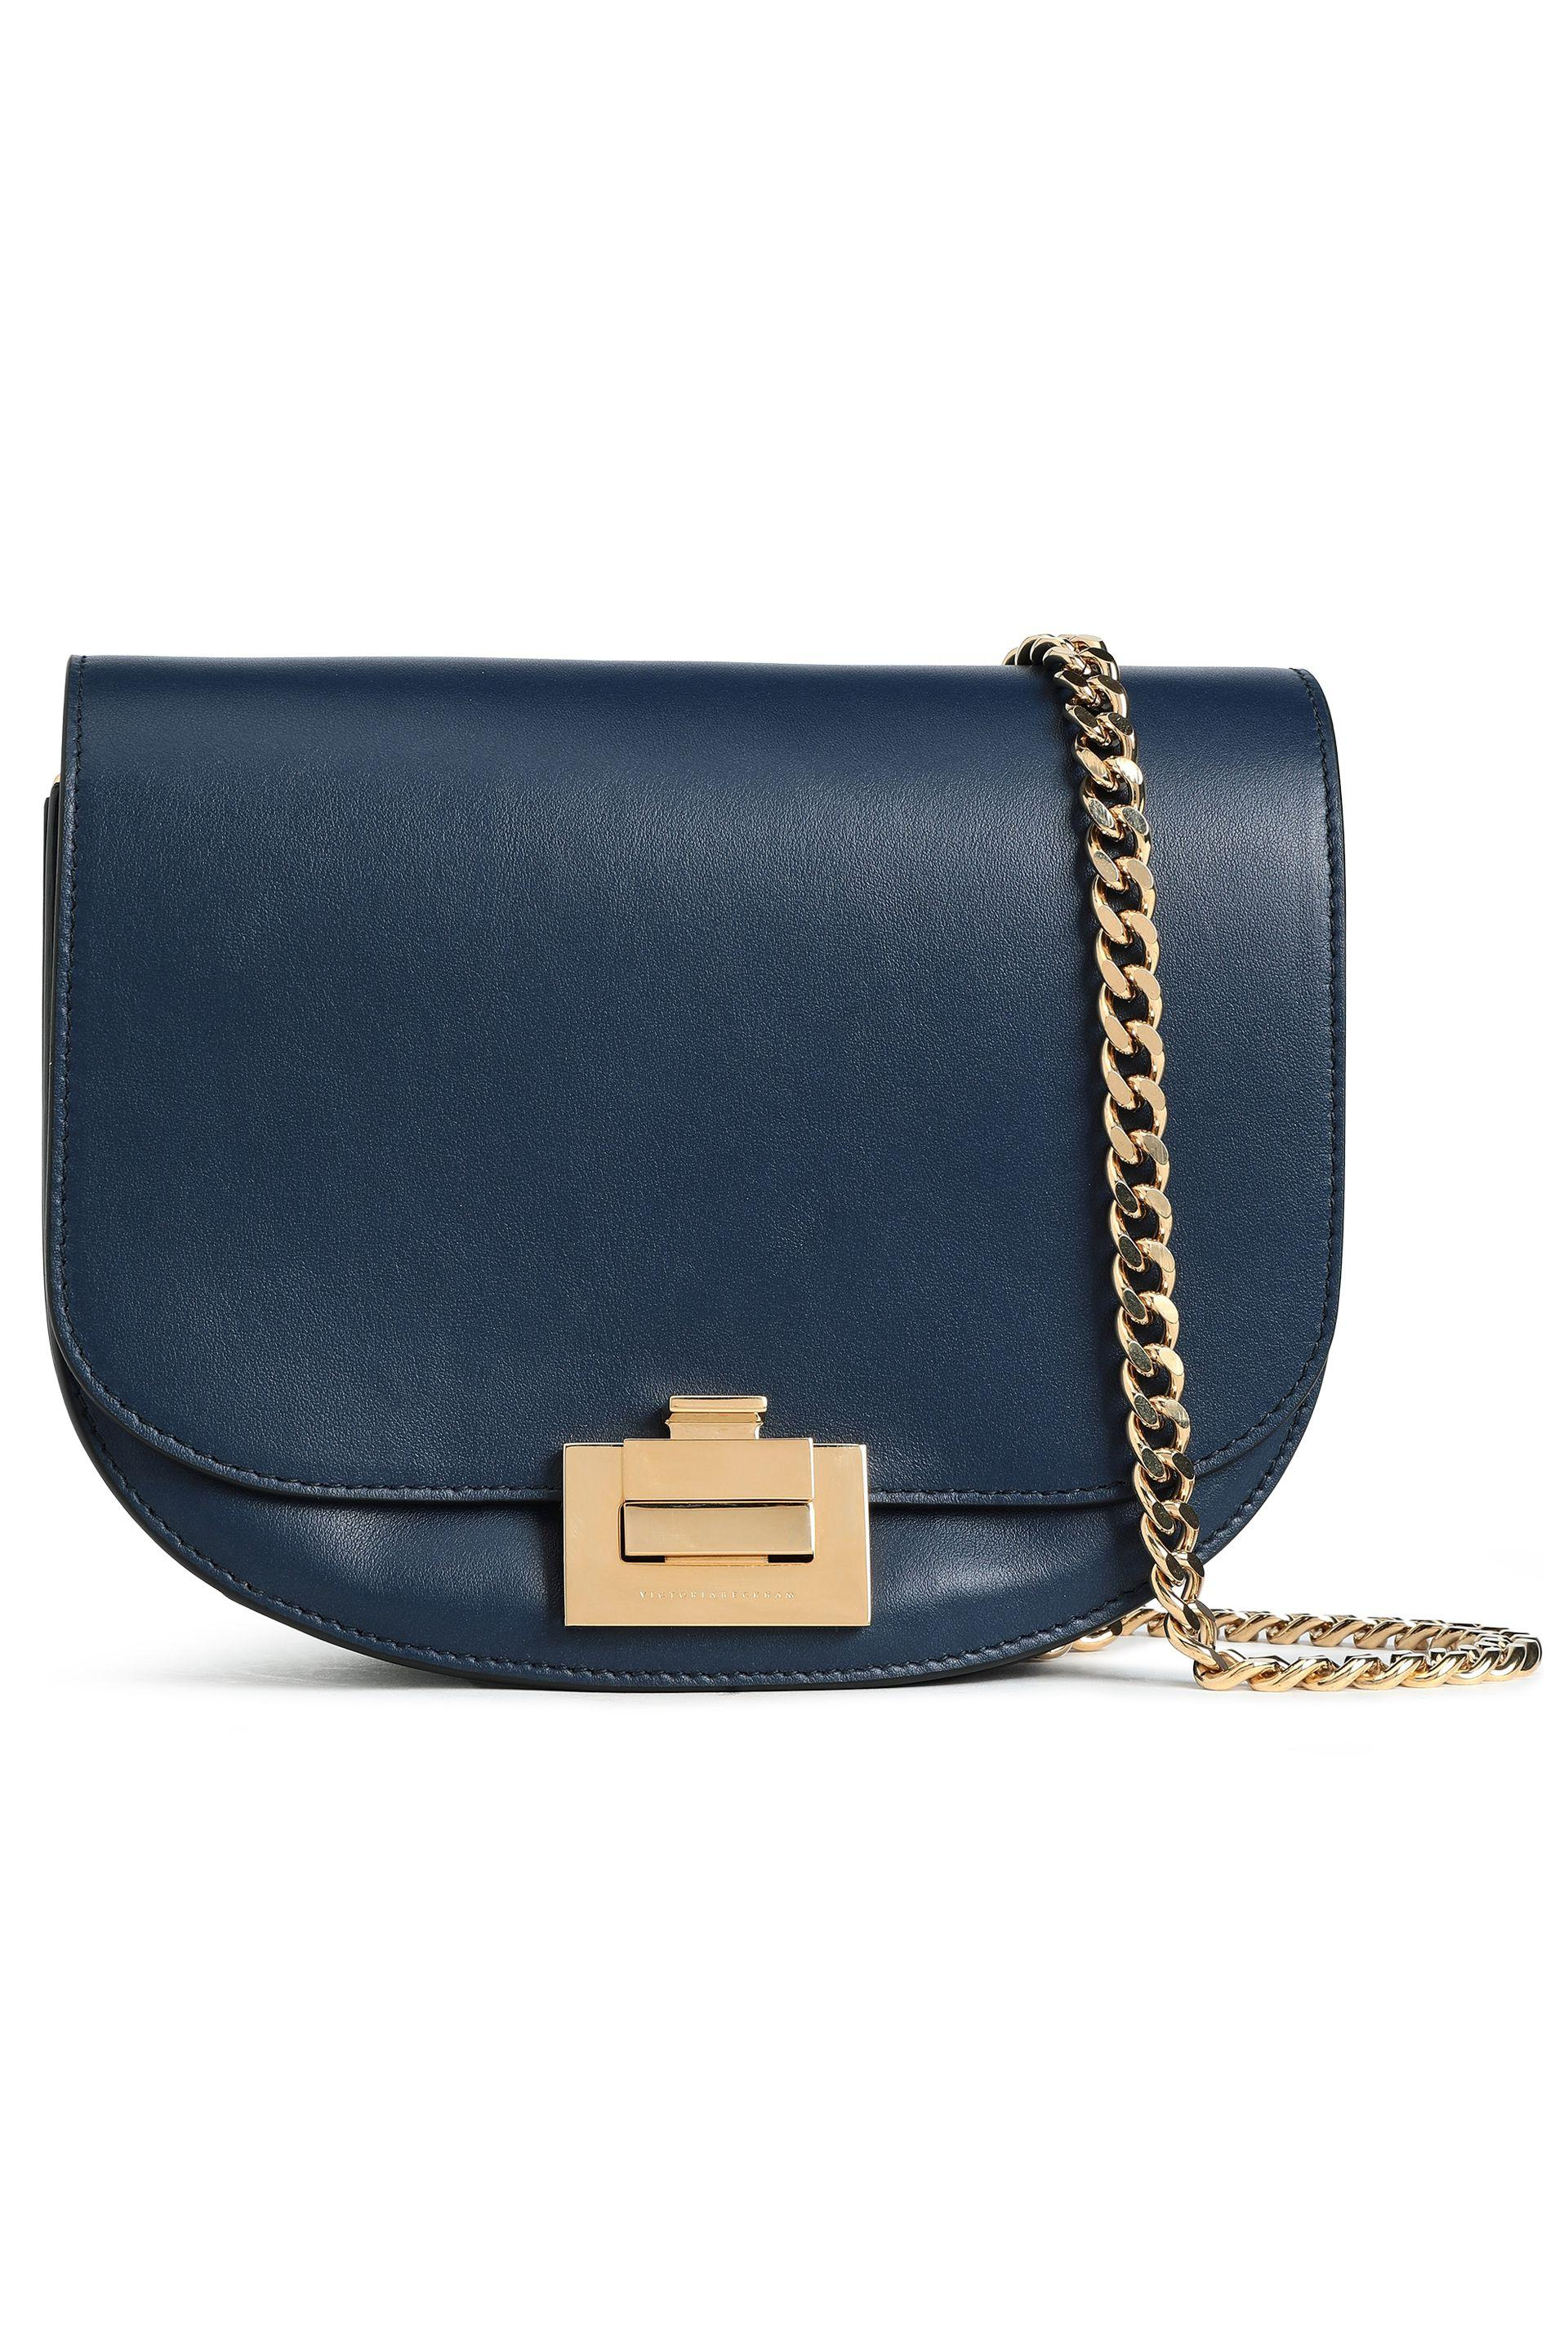 Victoria Beckham Woman Leather Shoulder Bag Navy in Blue - Lyst b8be4db1aa